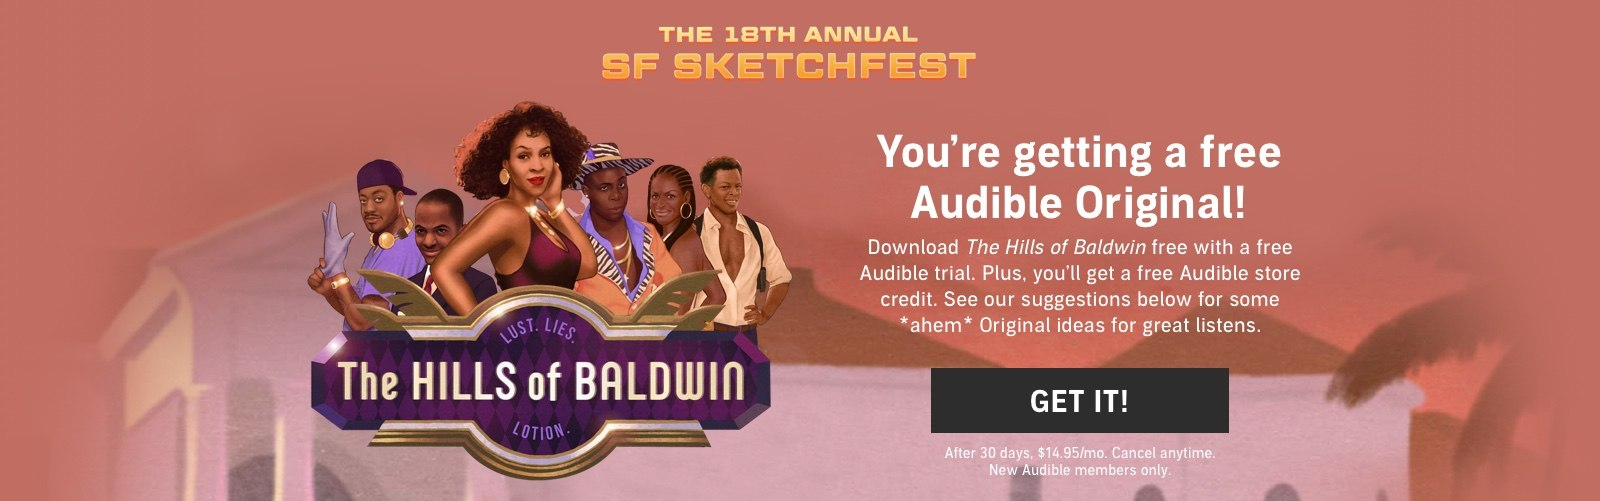 SF Sketchfest - 2 Free Audiobooks!